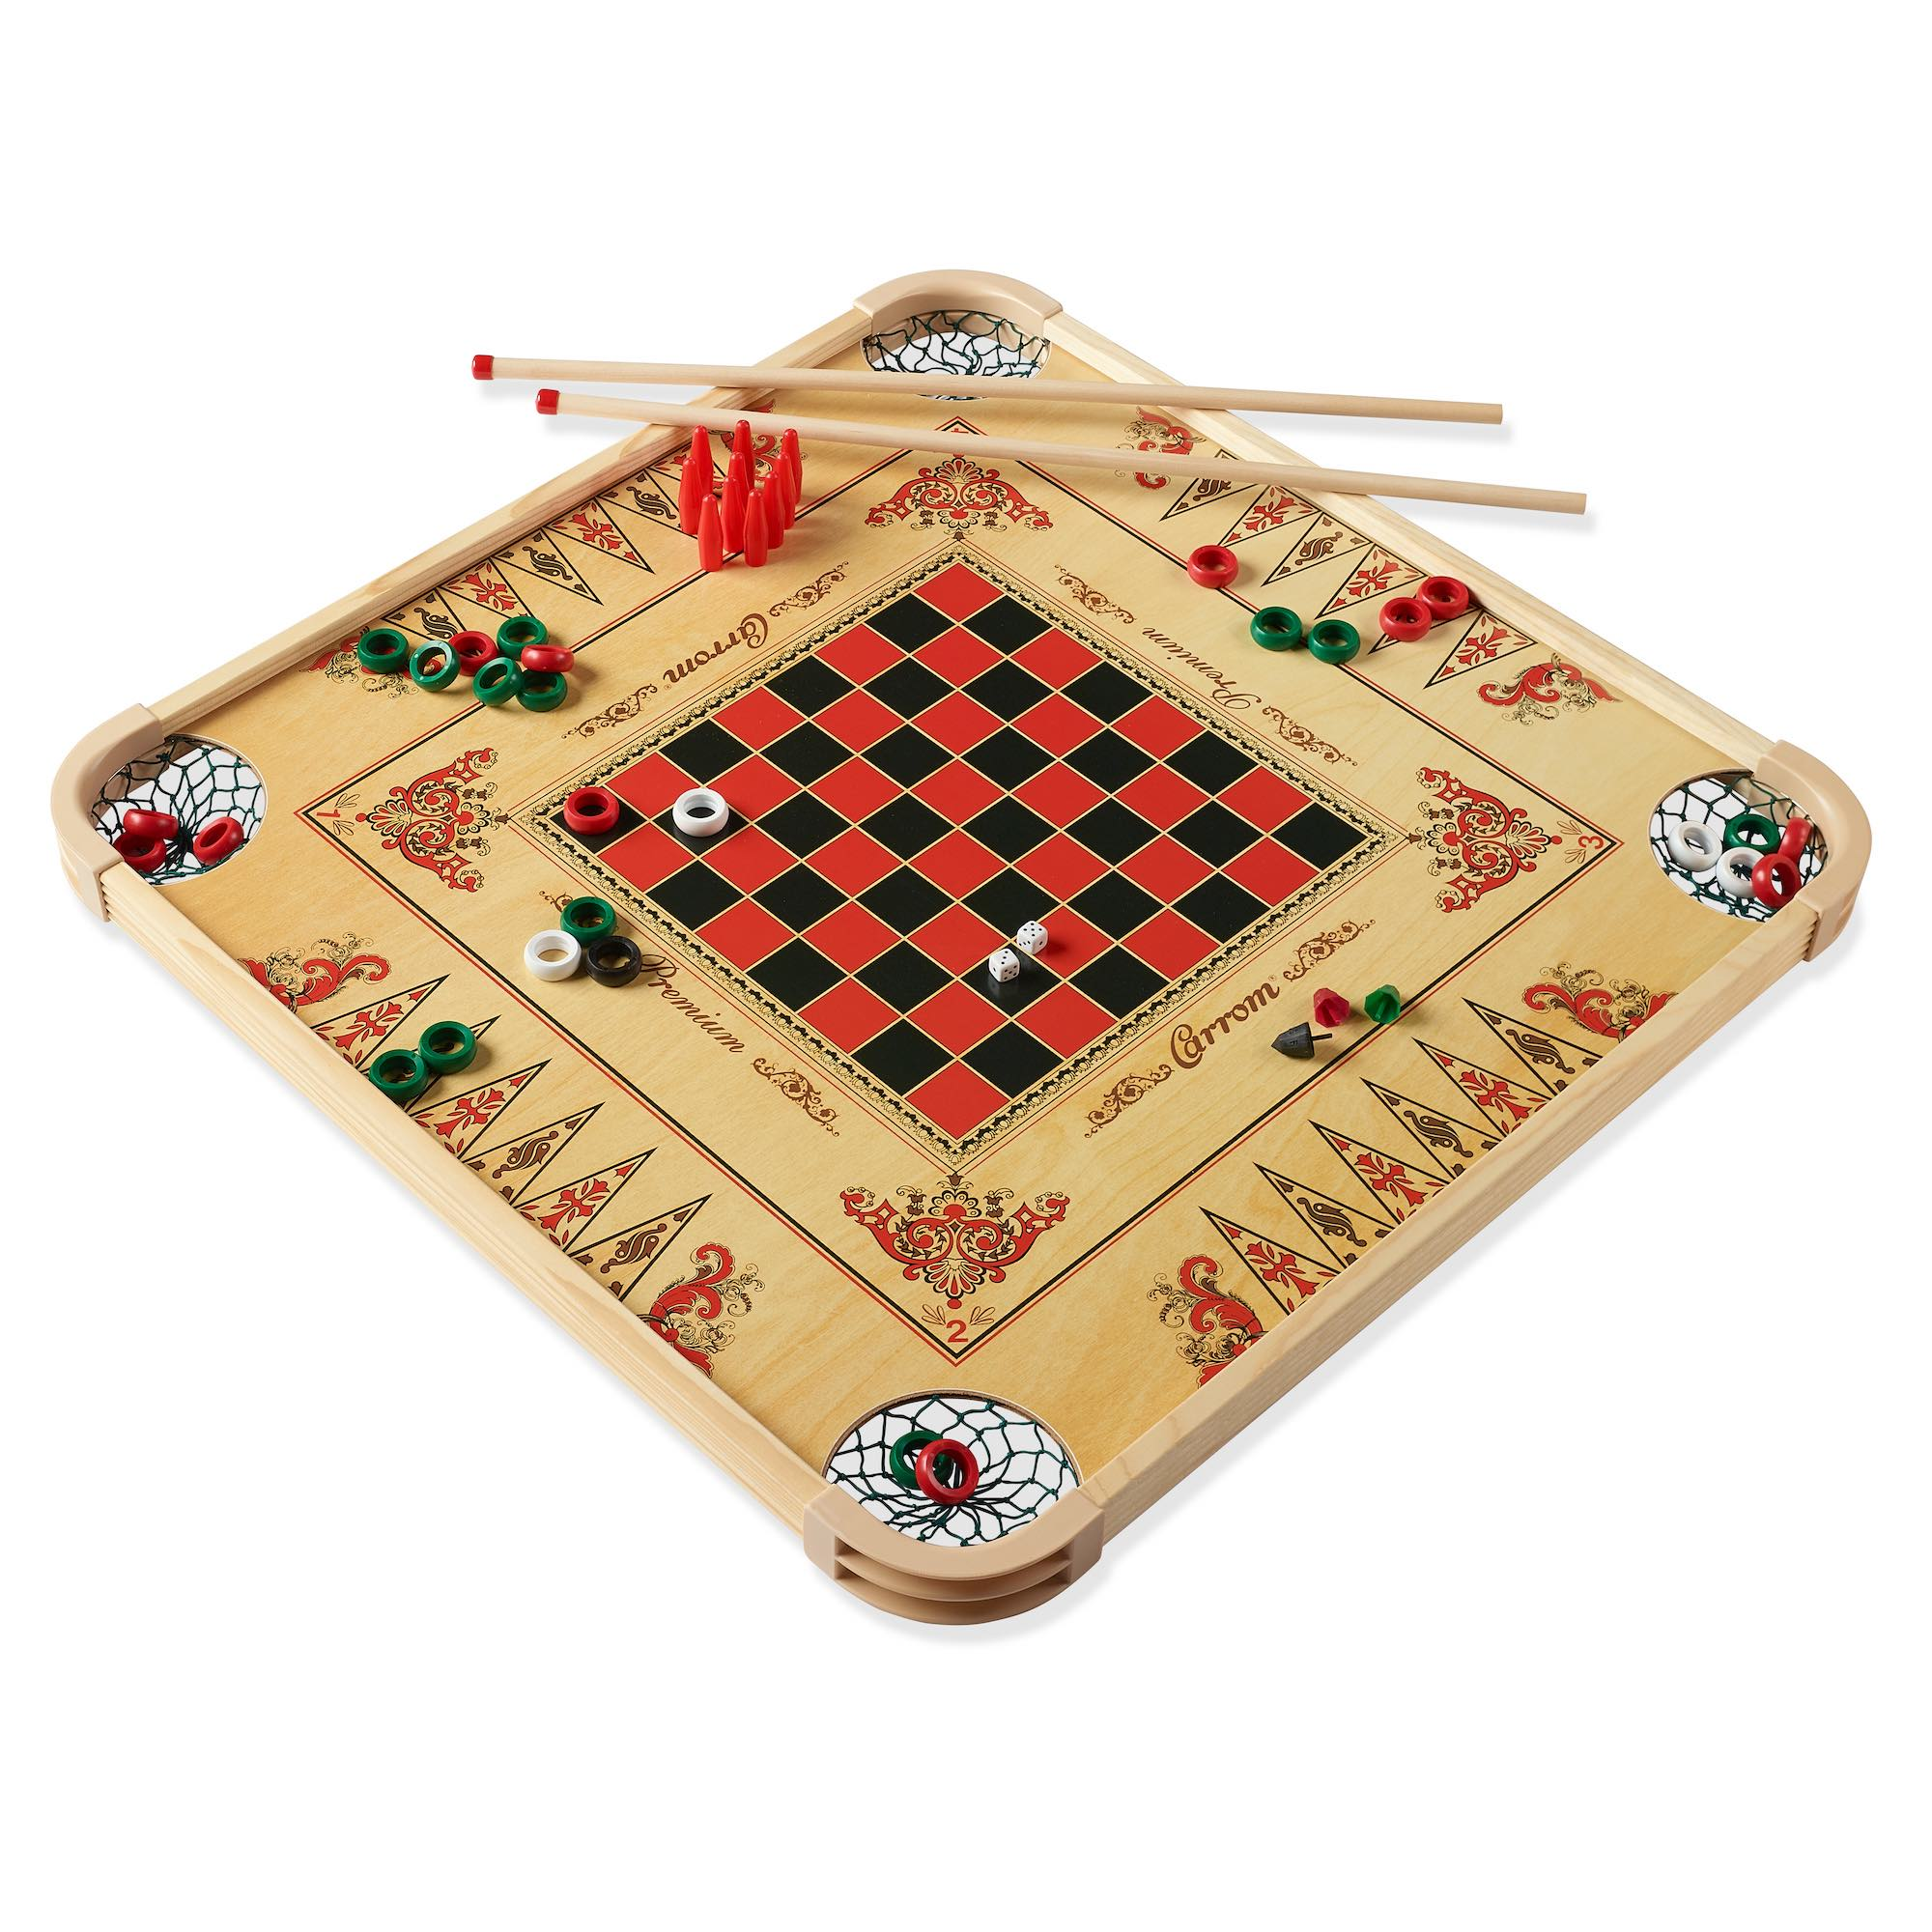 Carrom Game Board Carrom Company Versatile Game Board For Home